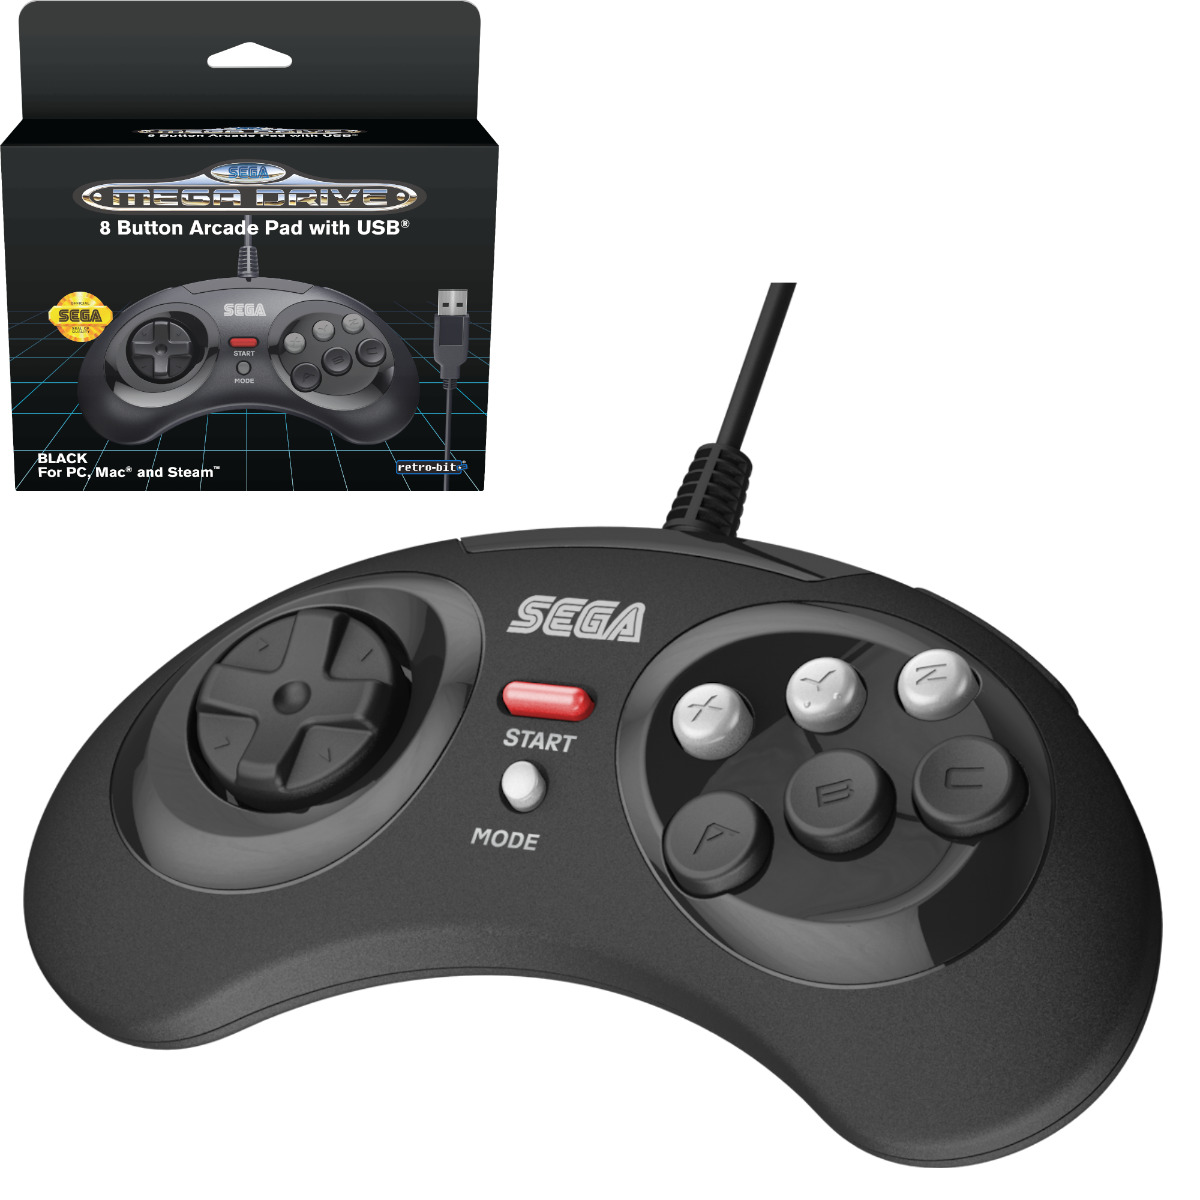 SEGA, Mega Drive, Arcade Pad, 8 Button, Black, USB